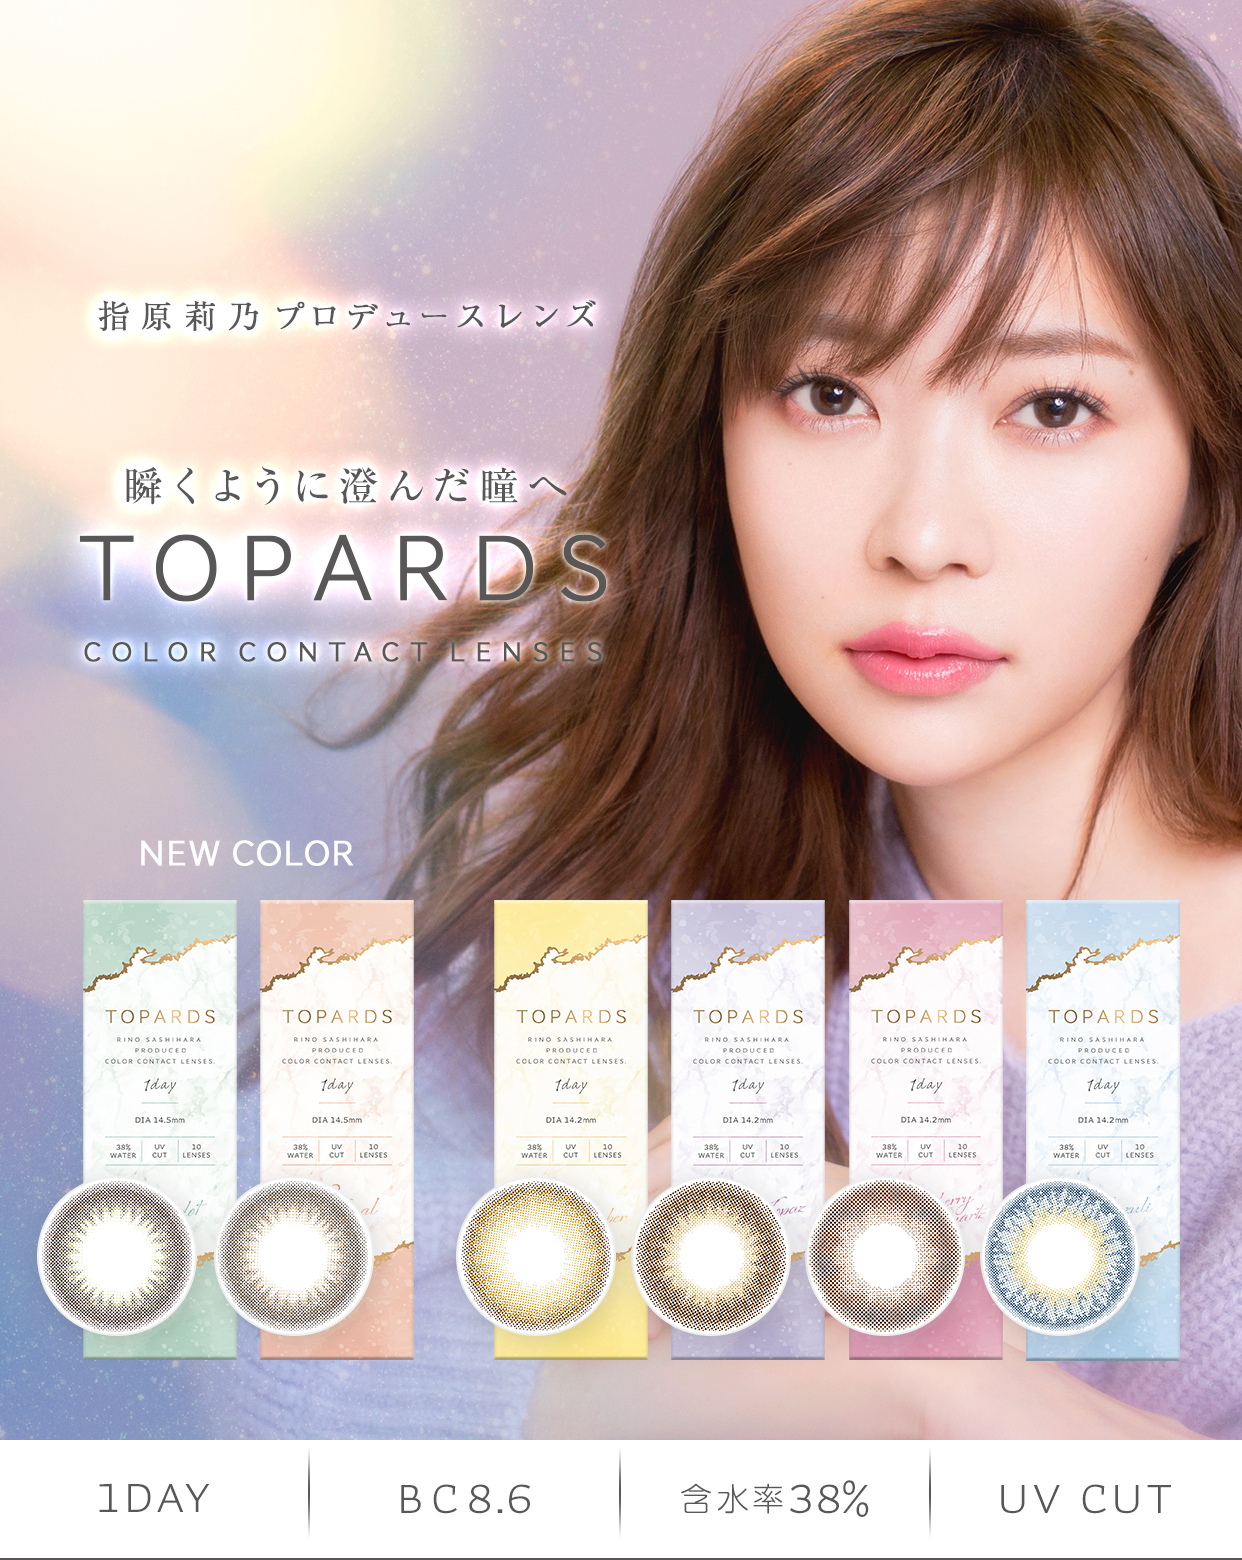 TOPARDS